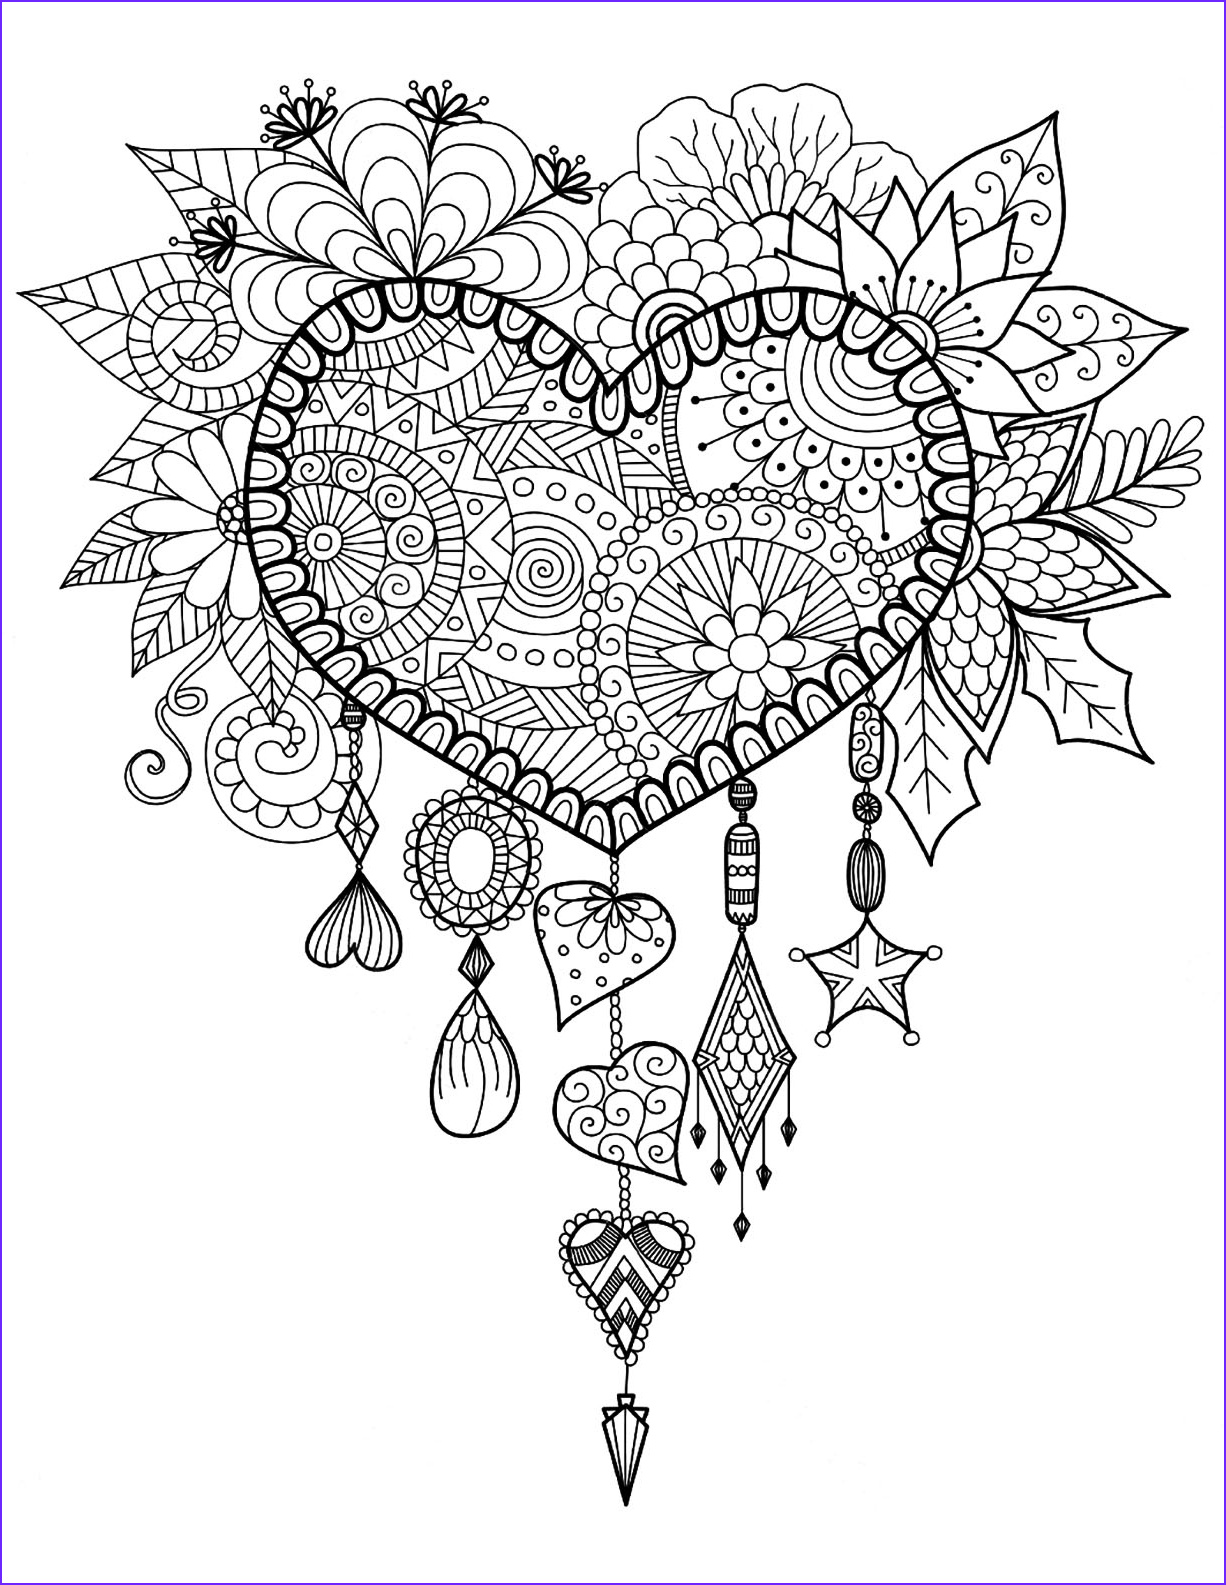 Coloring Stress Best Of Collection Heart Dreamcatcher